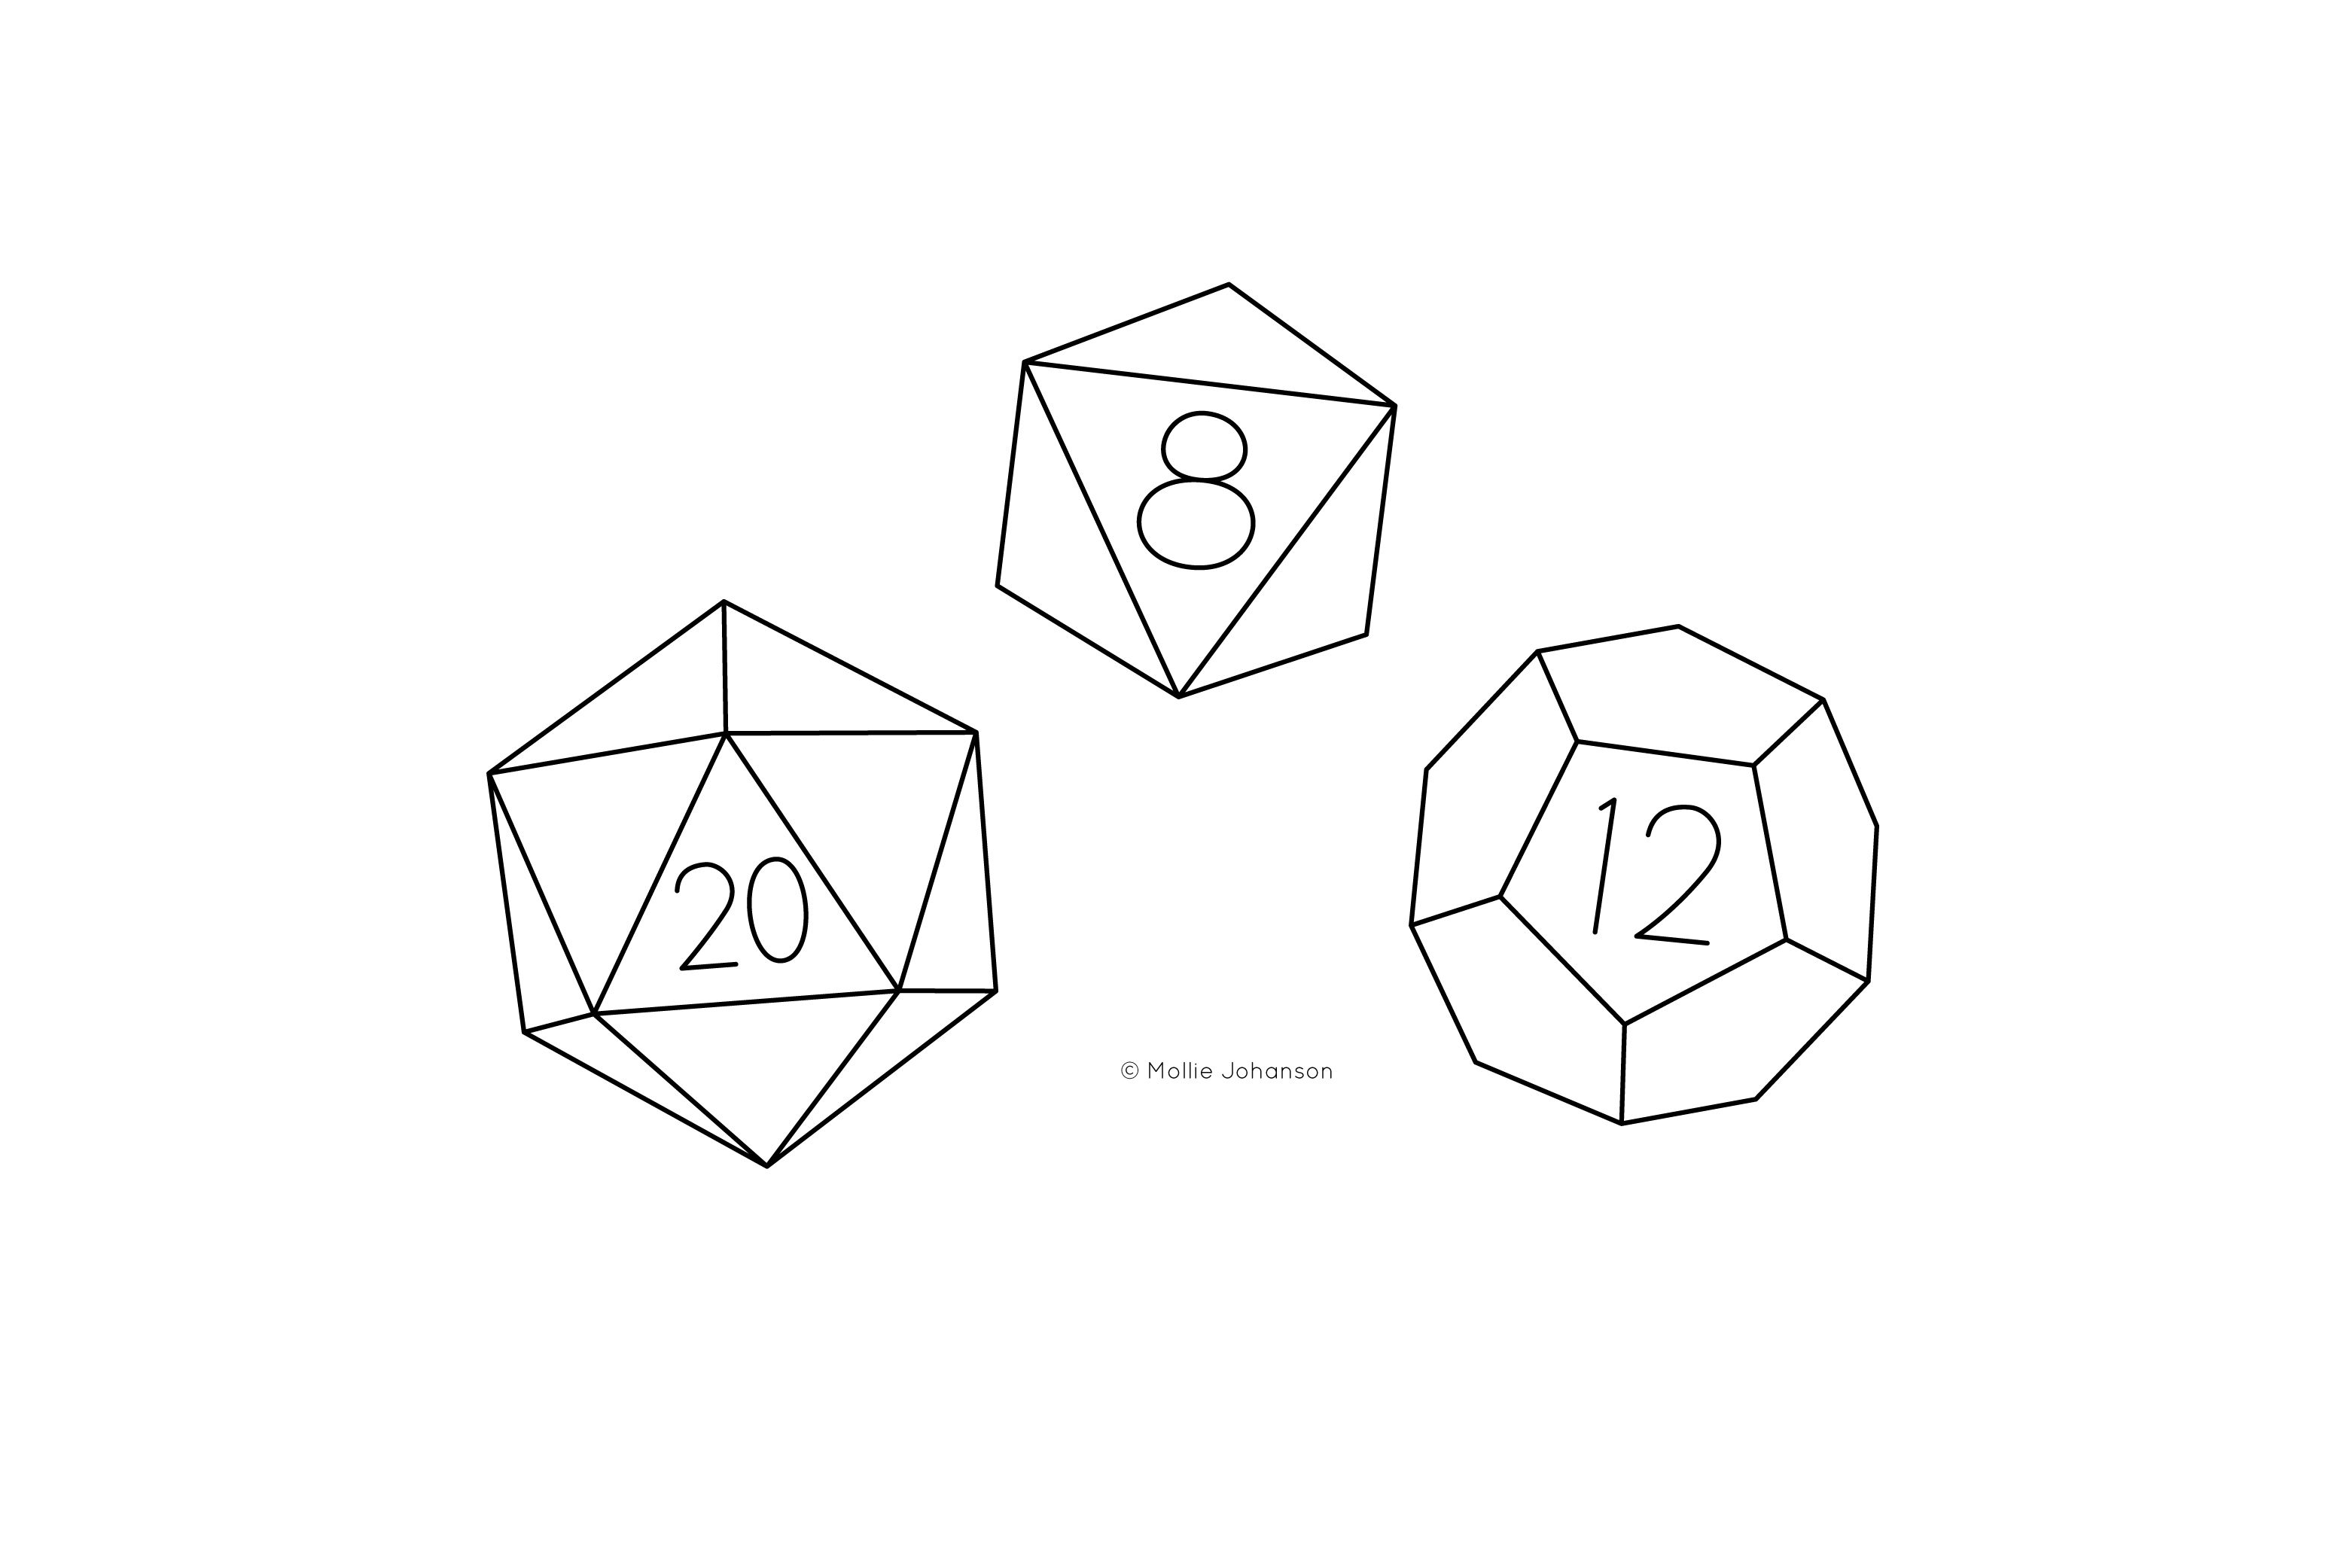 Multi-Sided Dice Embroidery Patterns